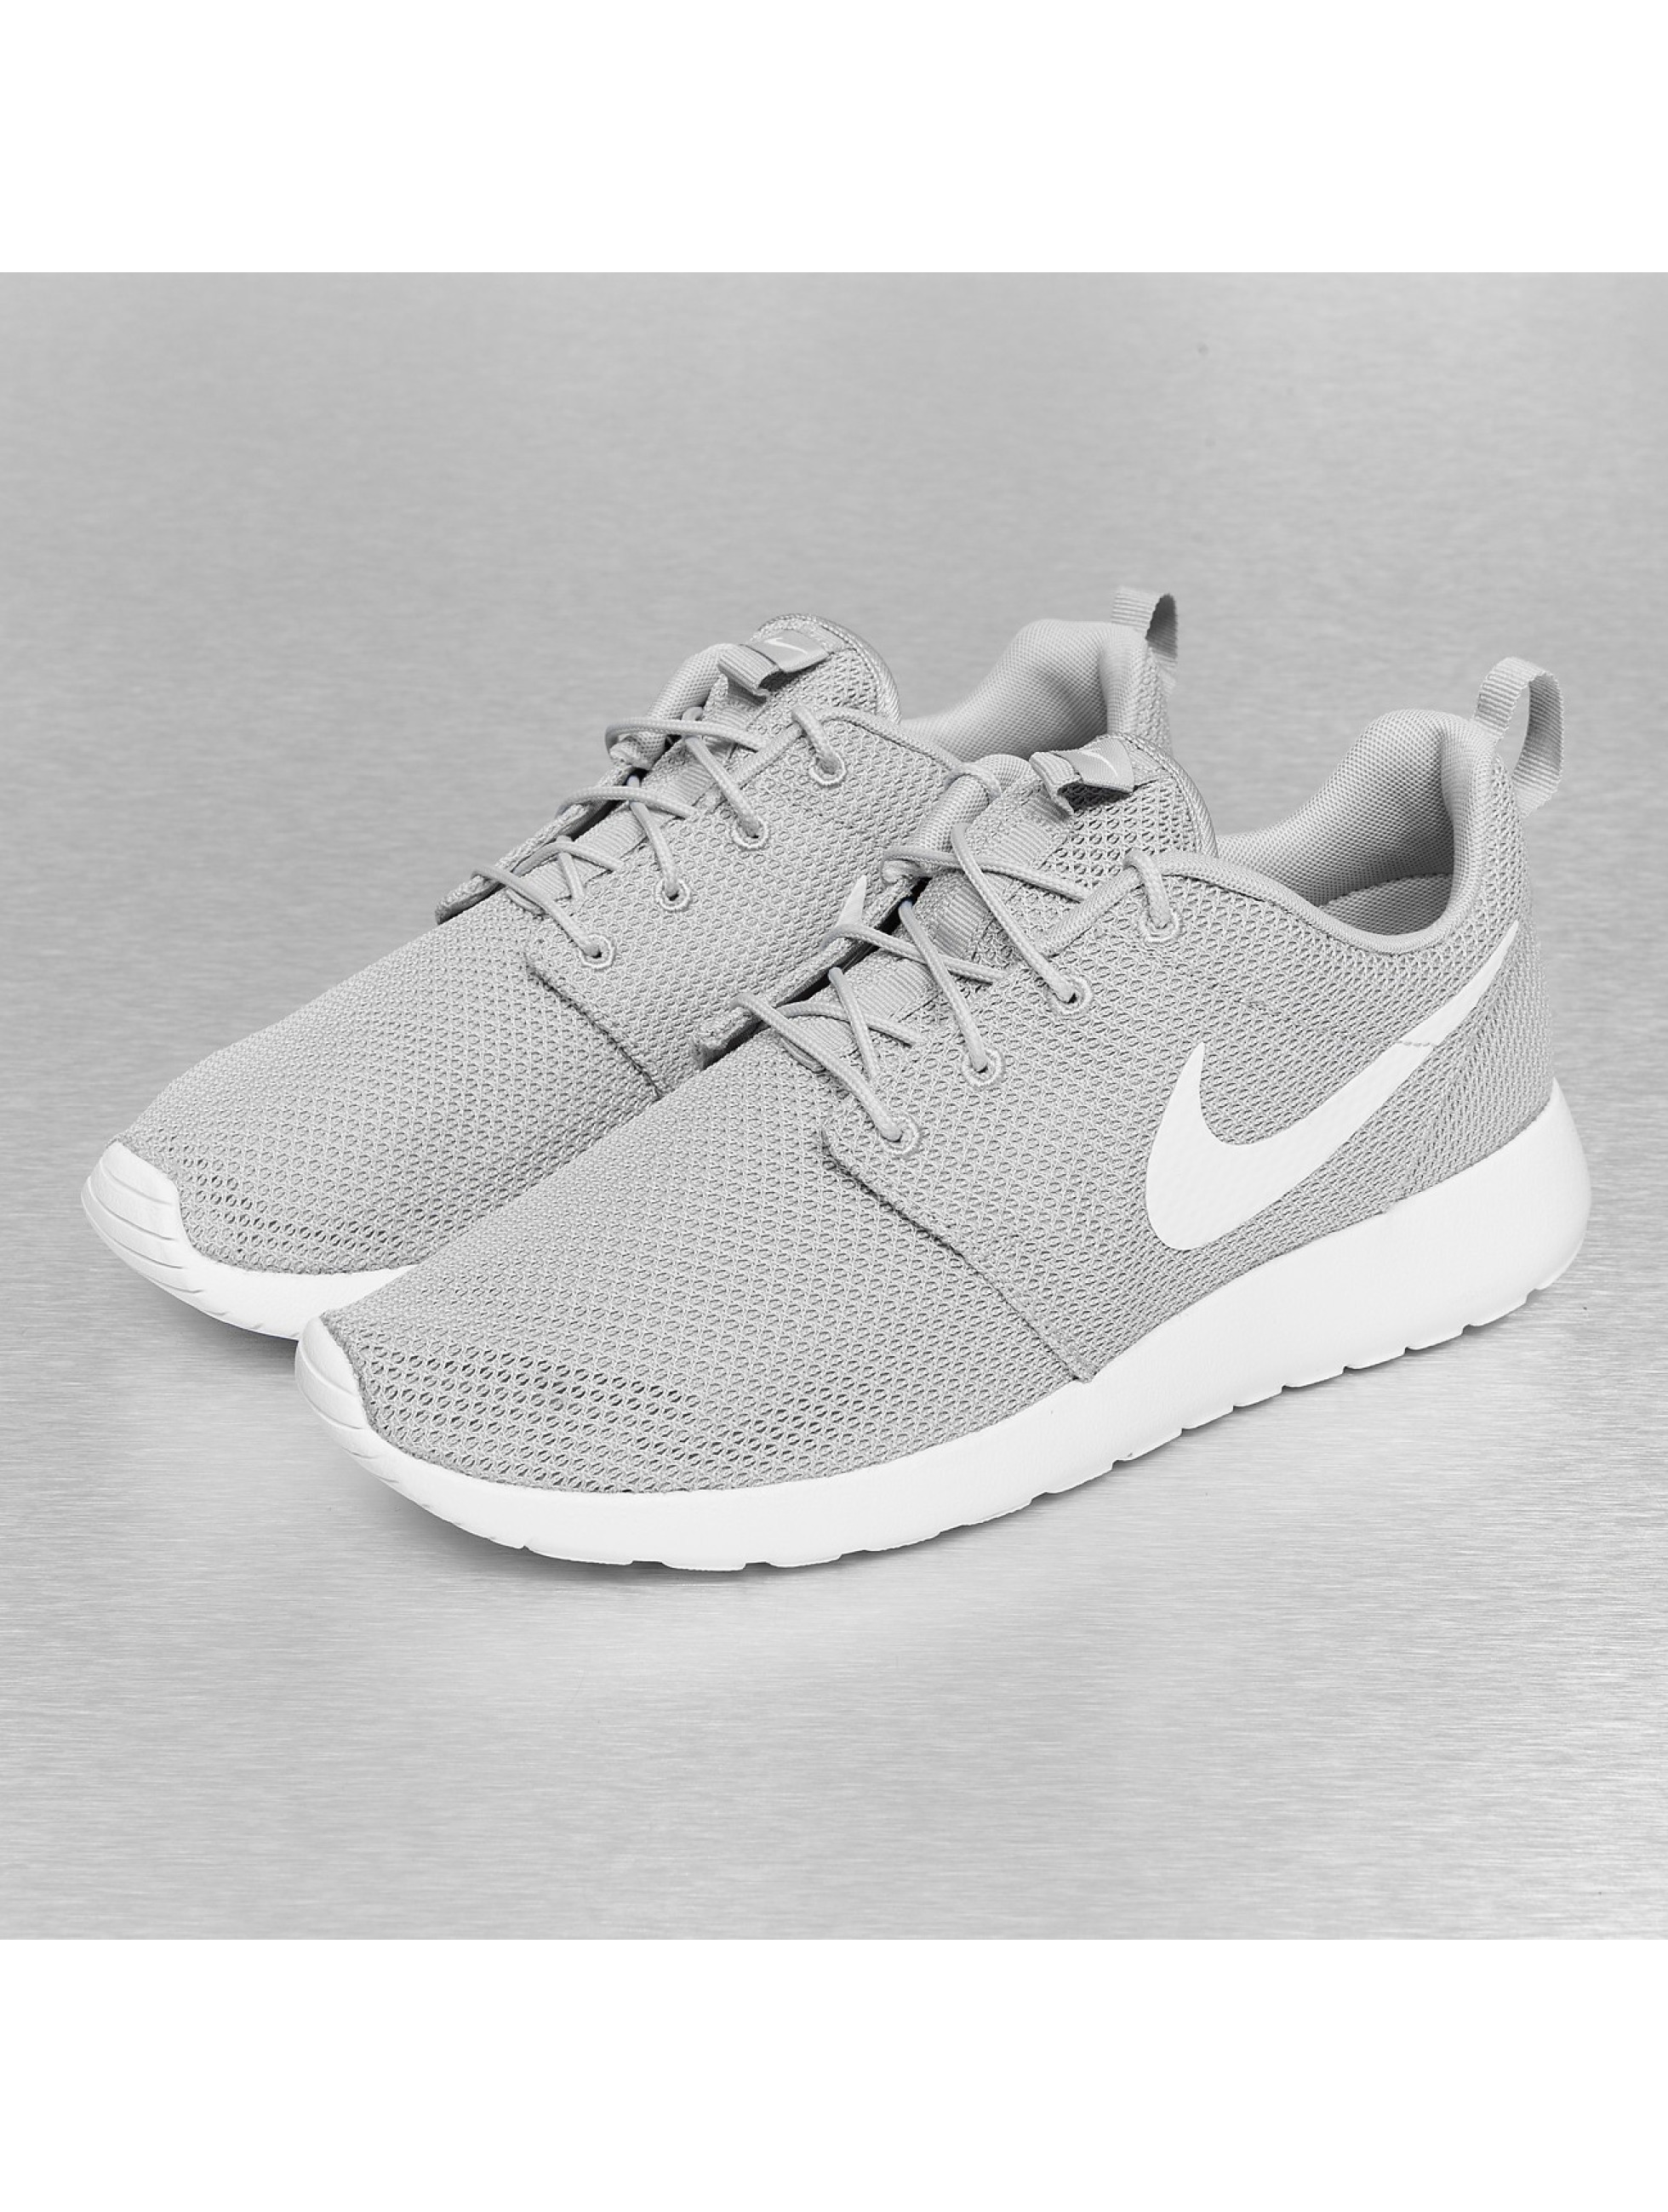 Nike Roshe Run Grau